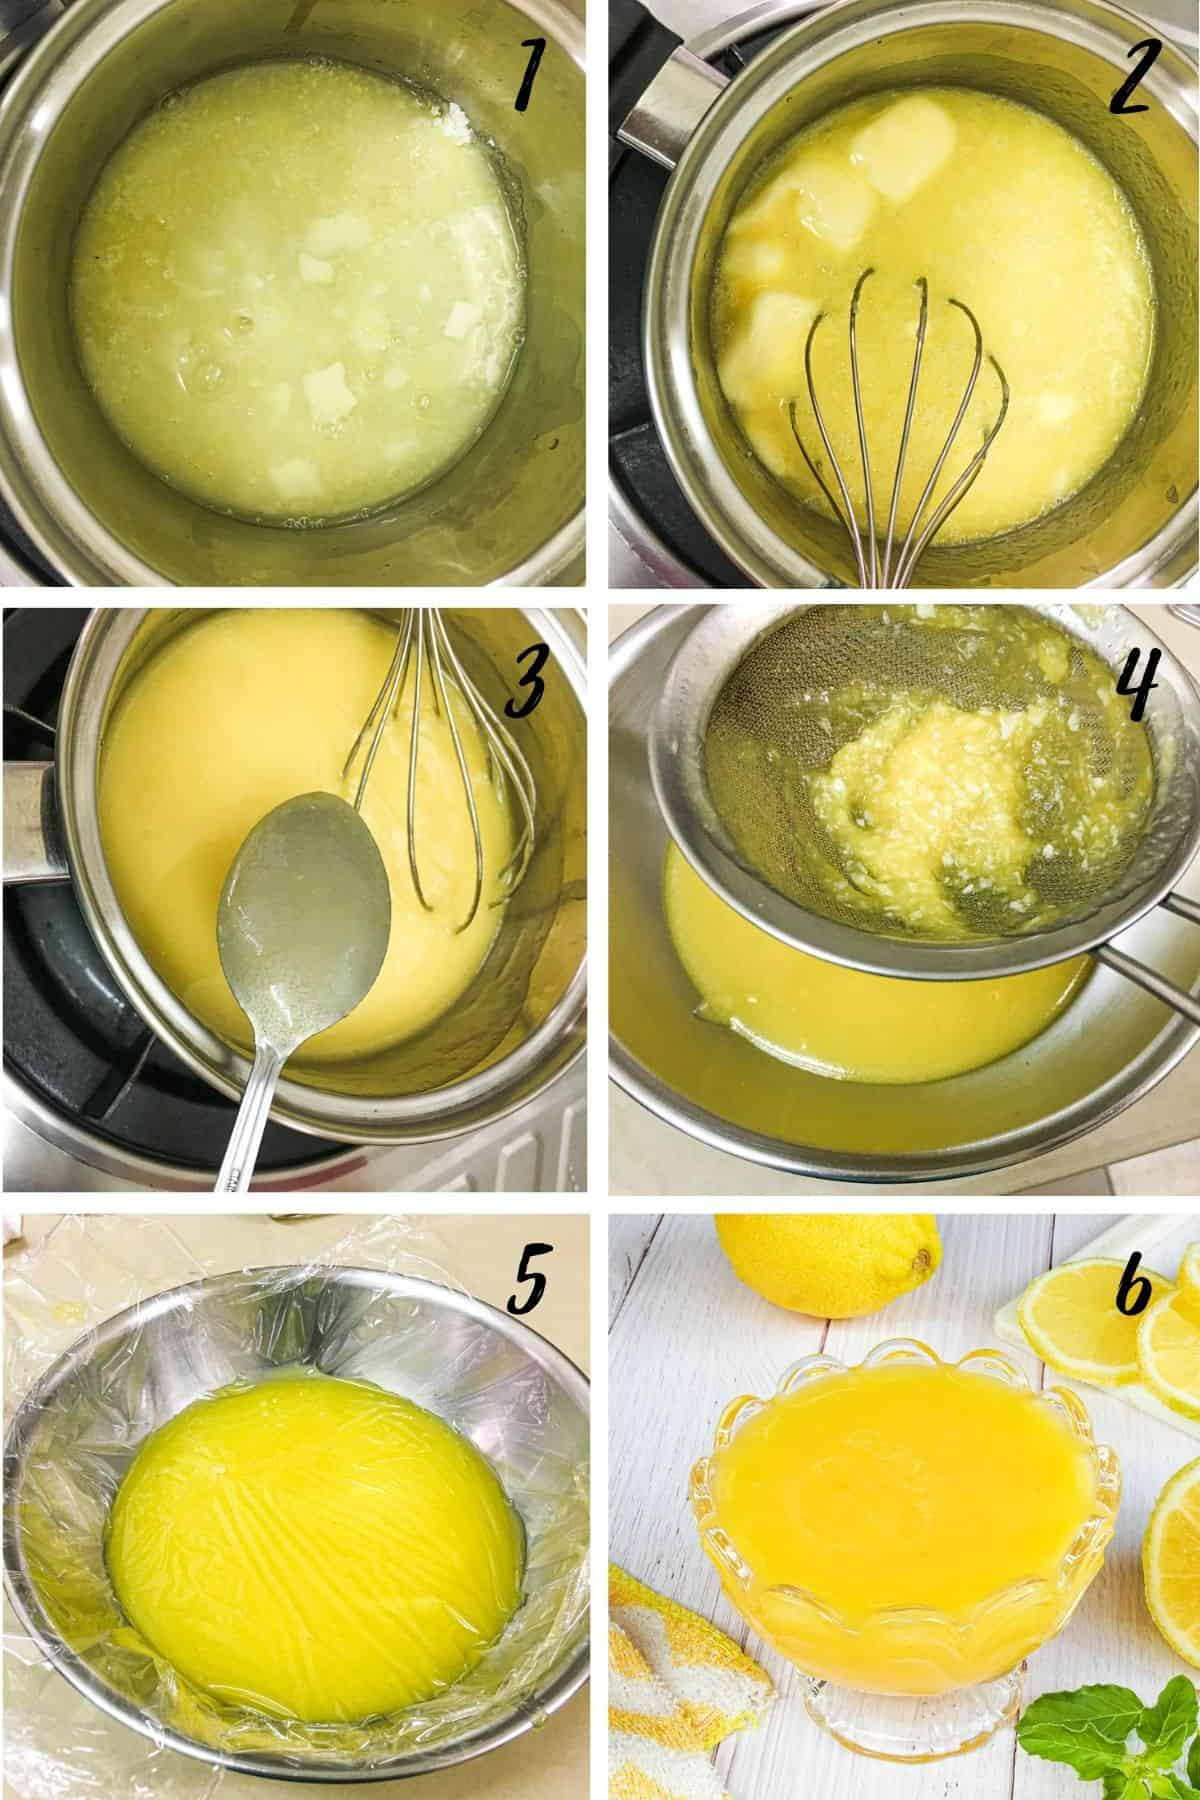 A poster of 6 images showing how to make lemon curd